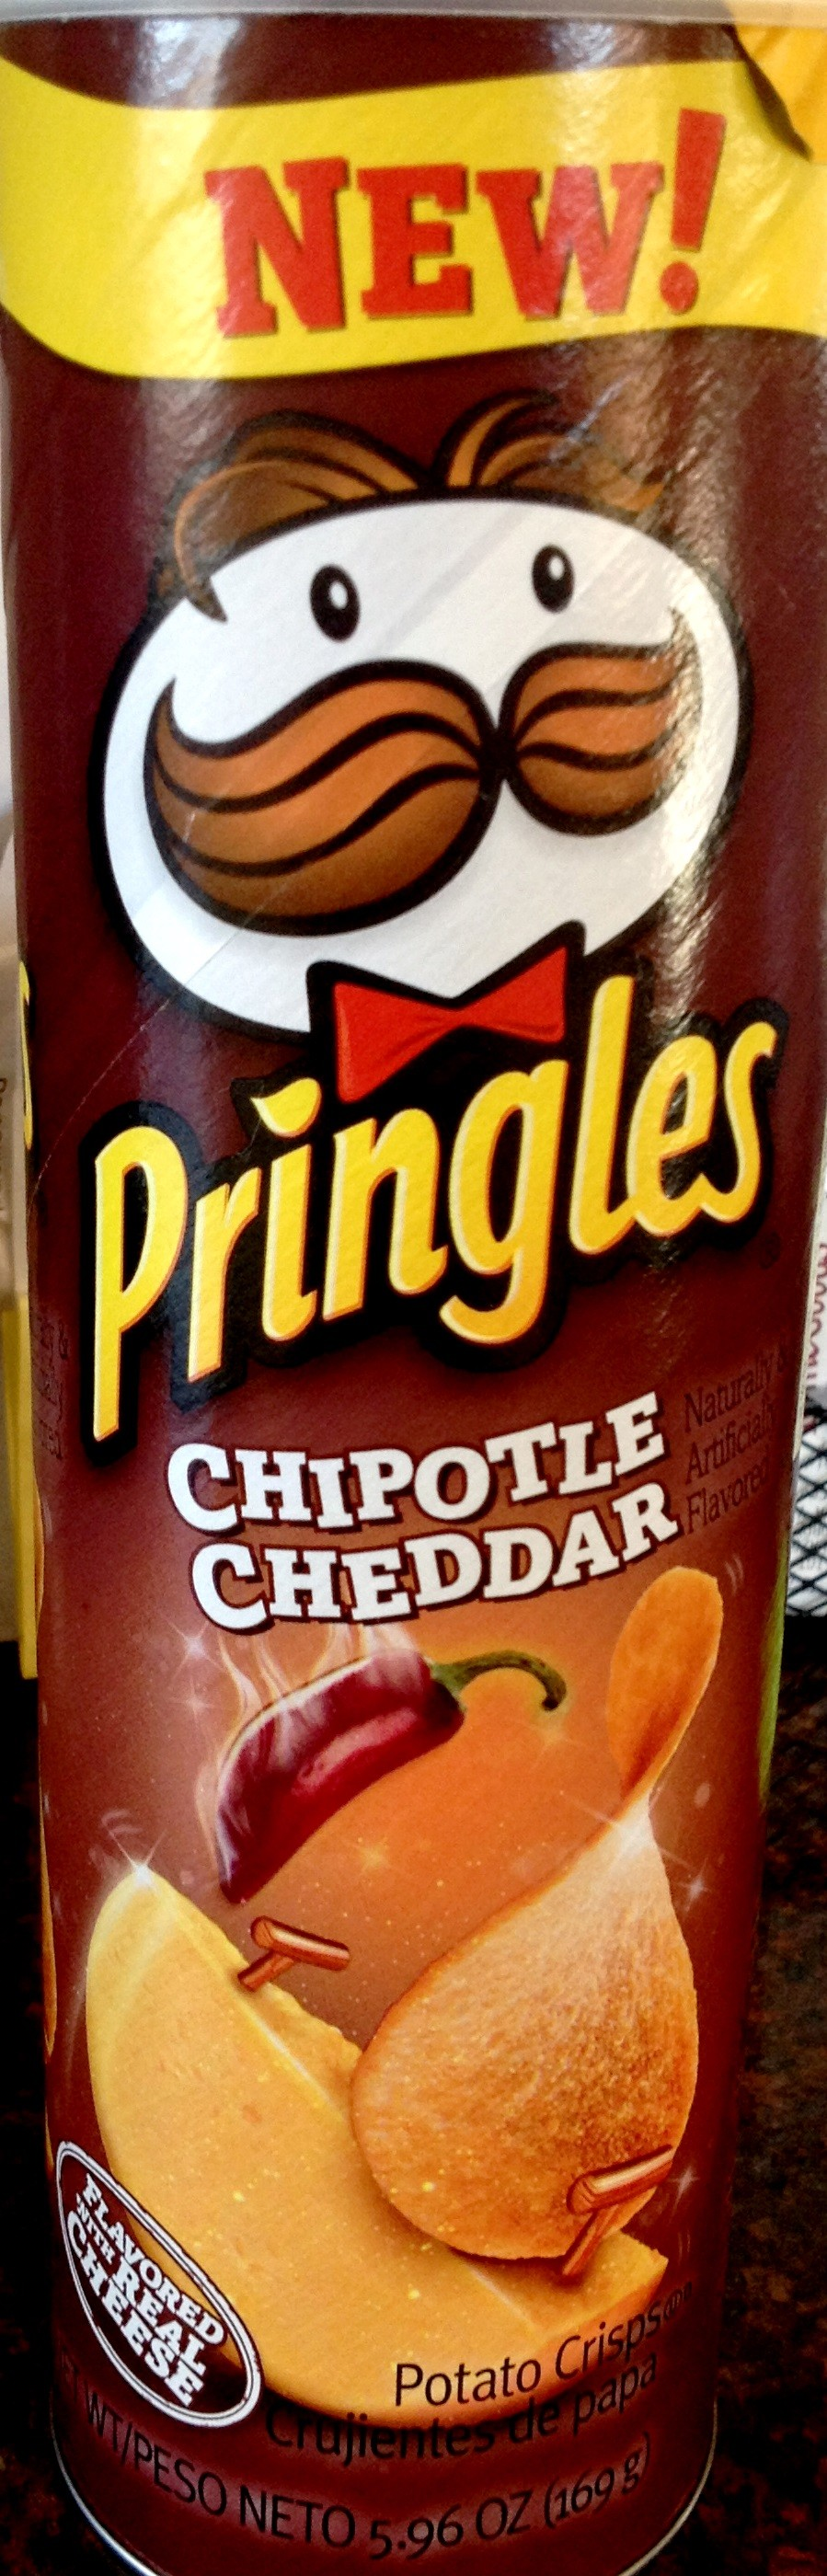 REVIEW: Pringles – Chipotle Cheddar | Chip Review